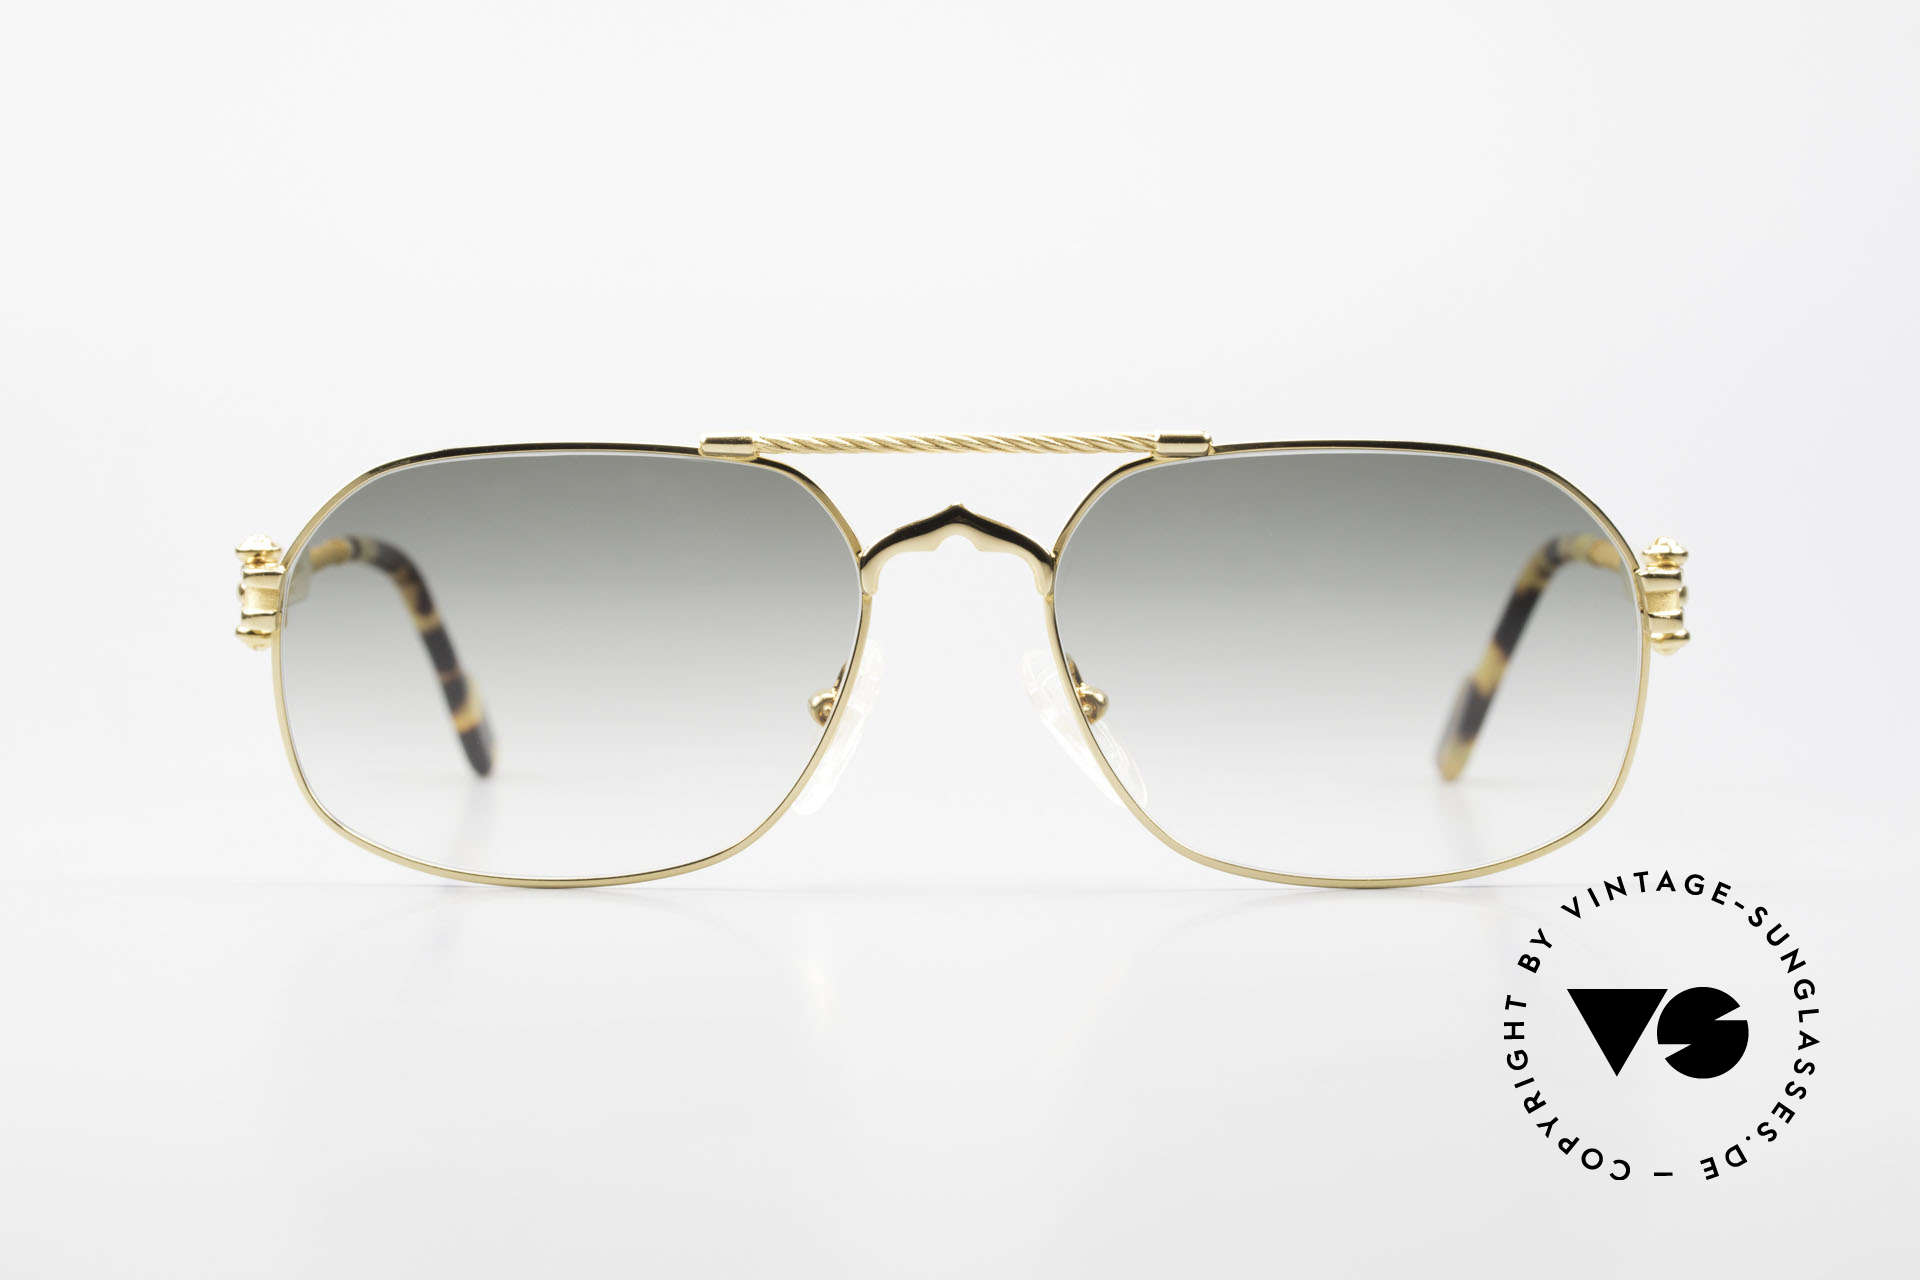 Philippe Charriol 90PP Insider 80's Luxury Sunglasses, P. Charriol was the executive director of CARTIER!, Made for Men